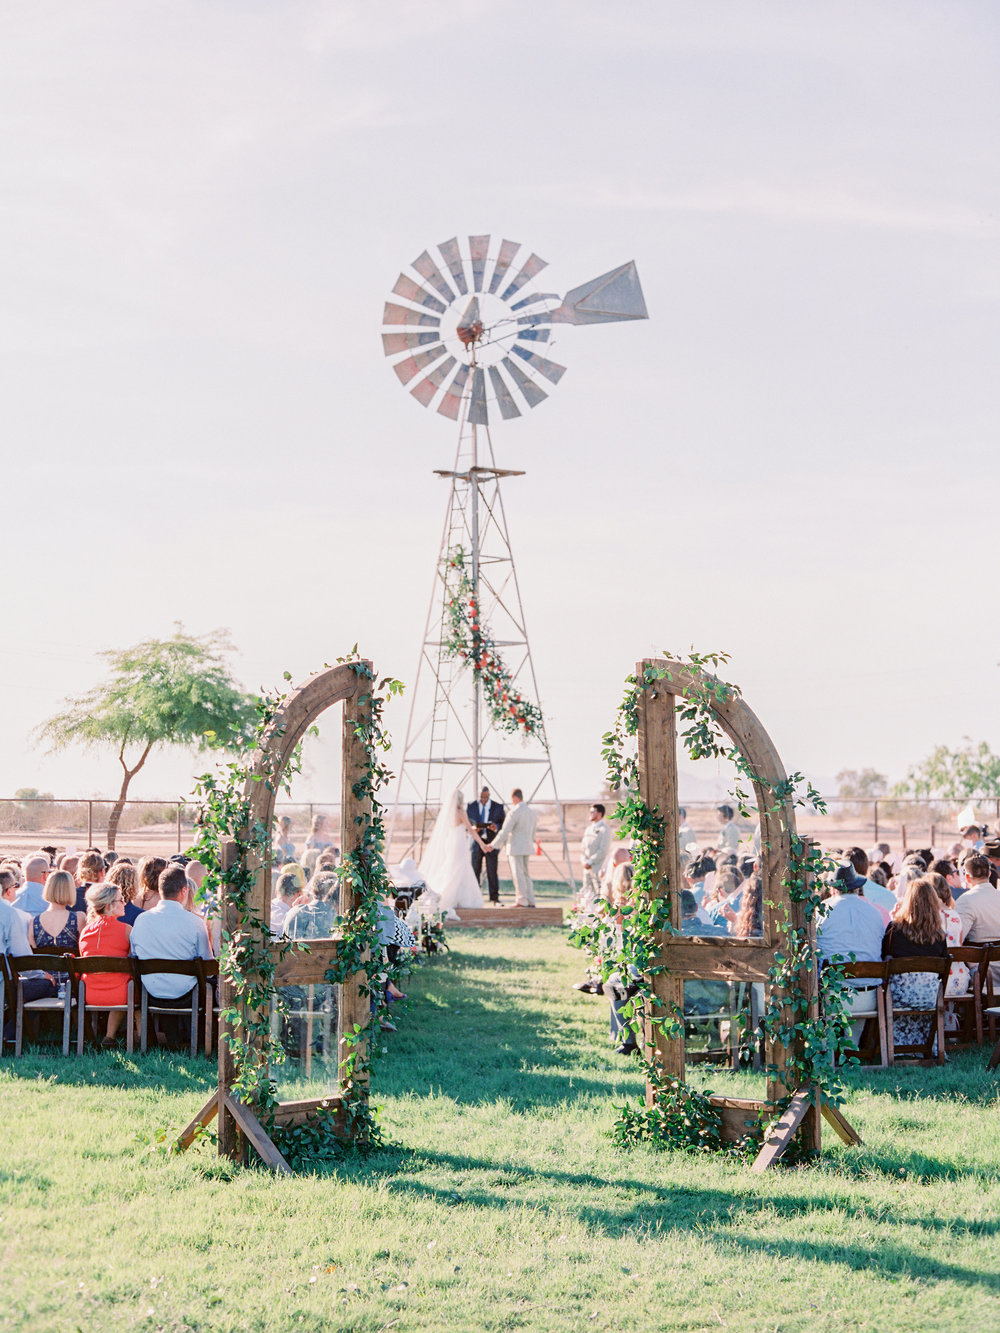 Dairy Farm Wedding - Windmill with Floral Garland Wedding Ceremony